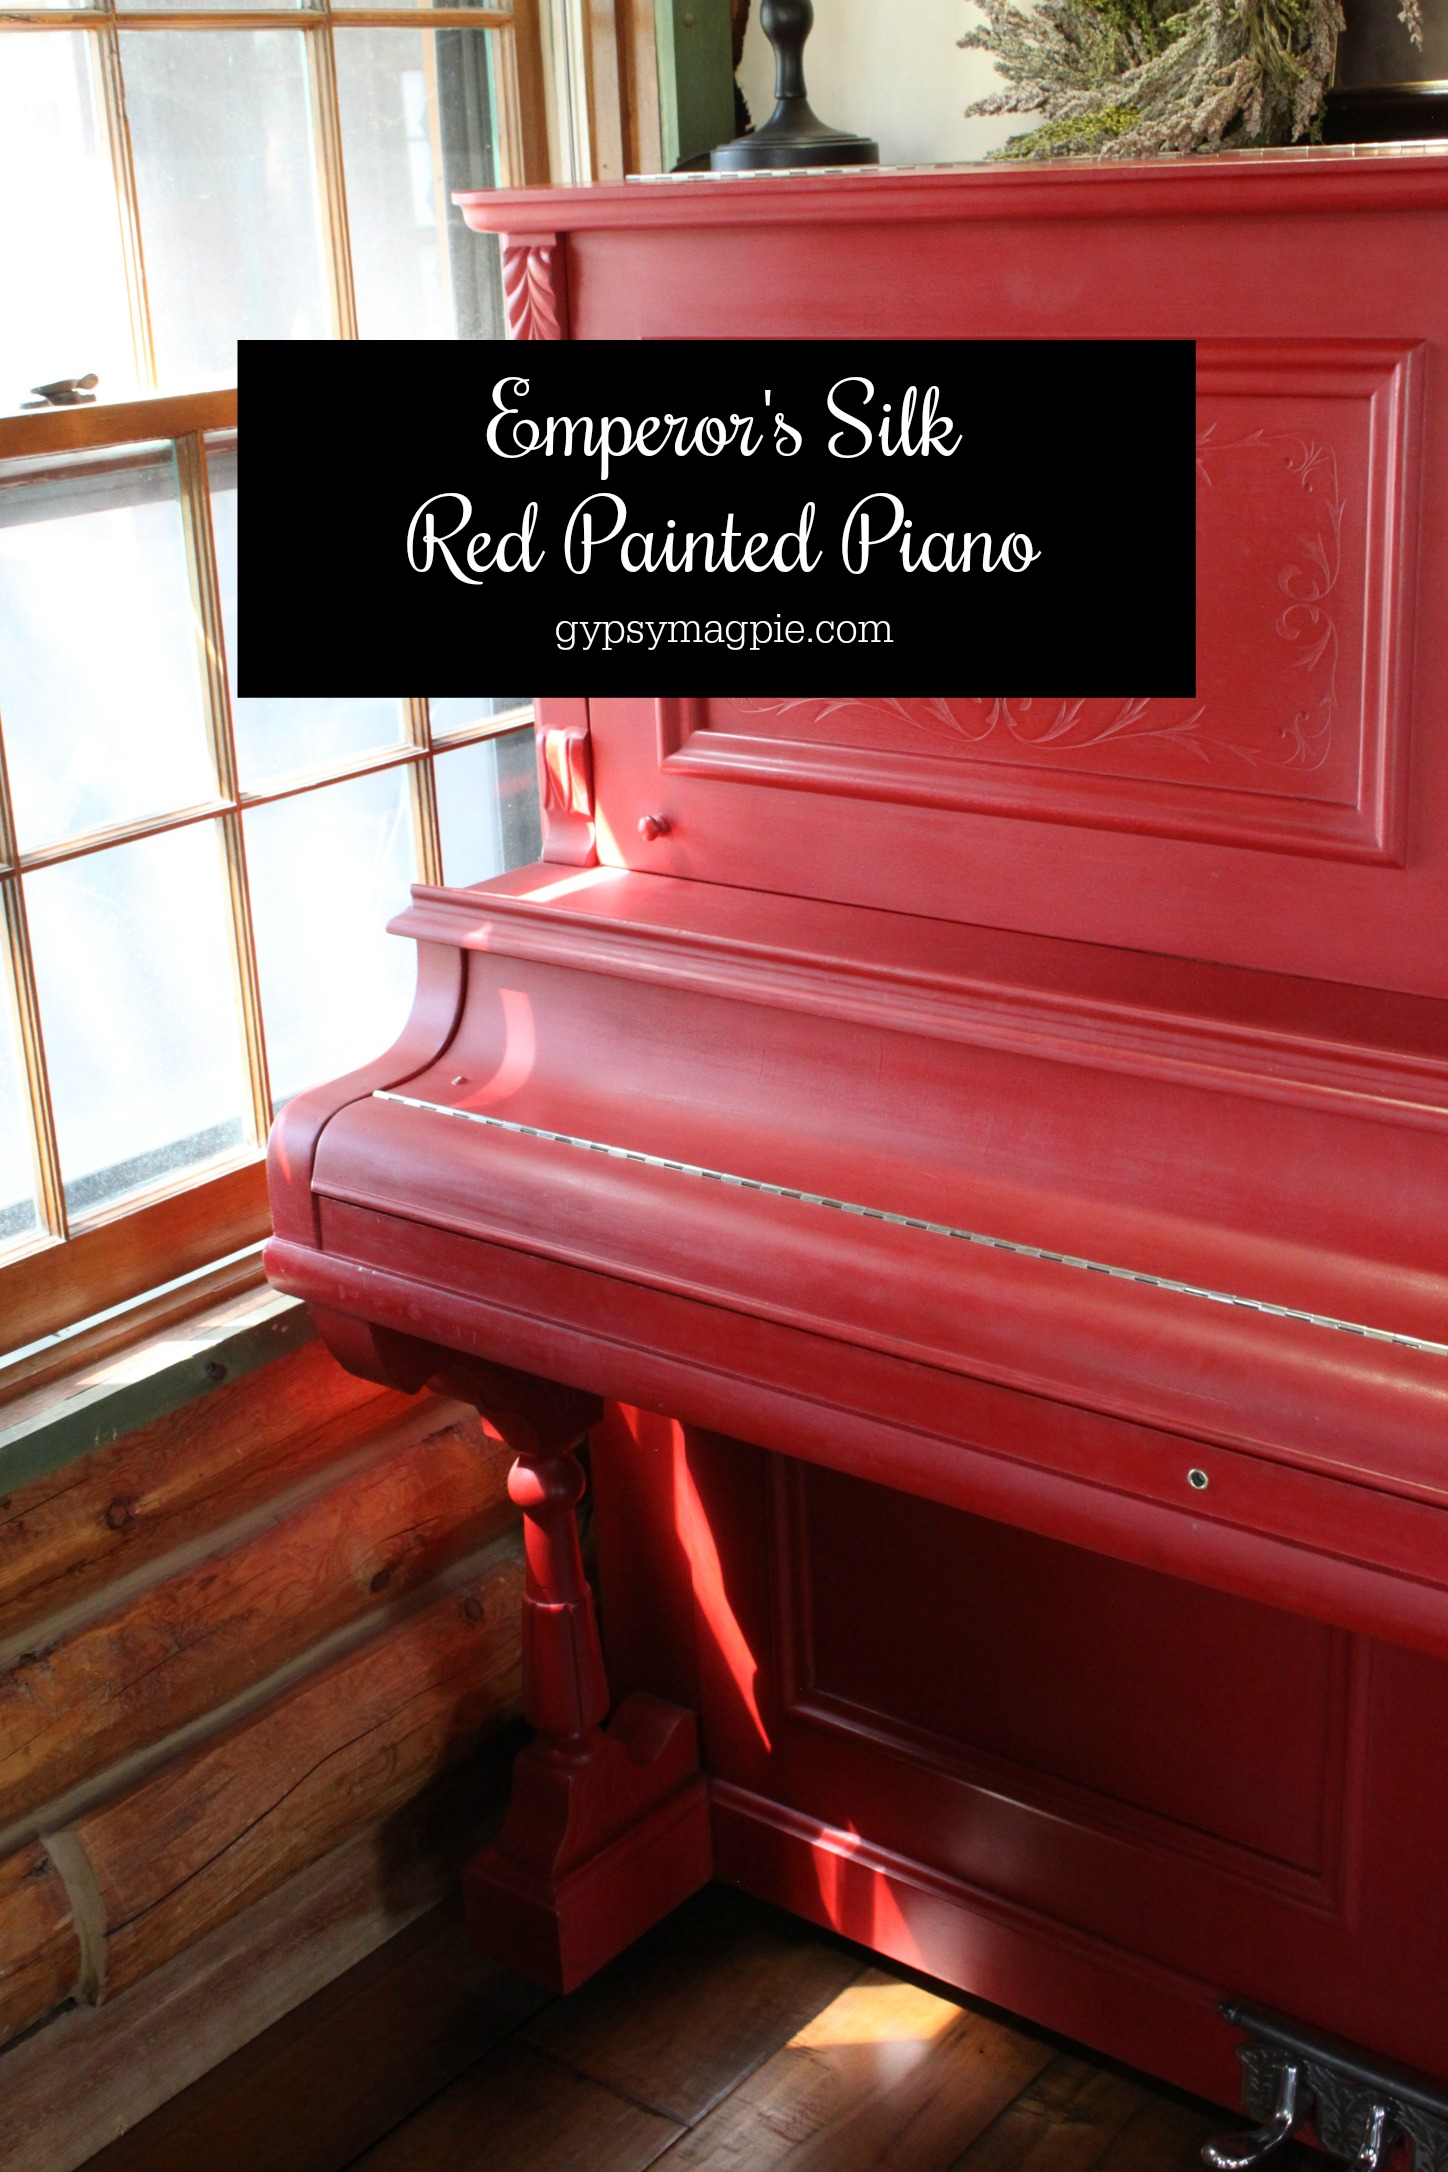 Emperor's Silk red painted piano by Gypsy Magpie